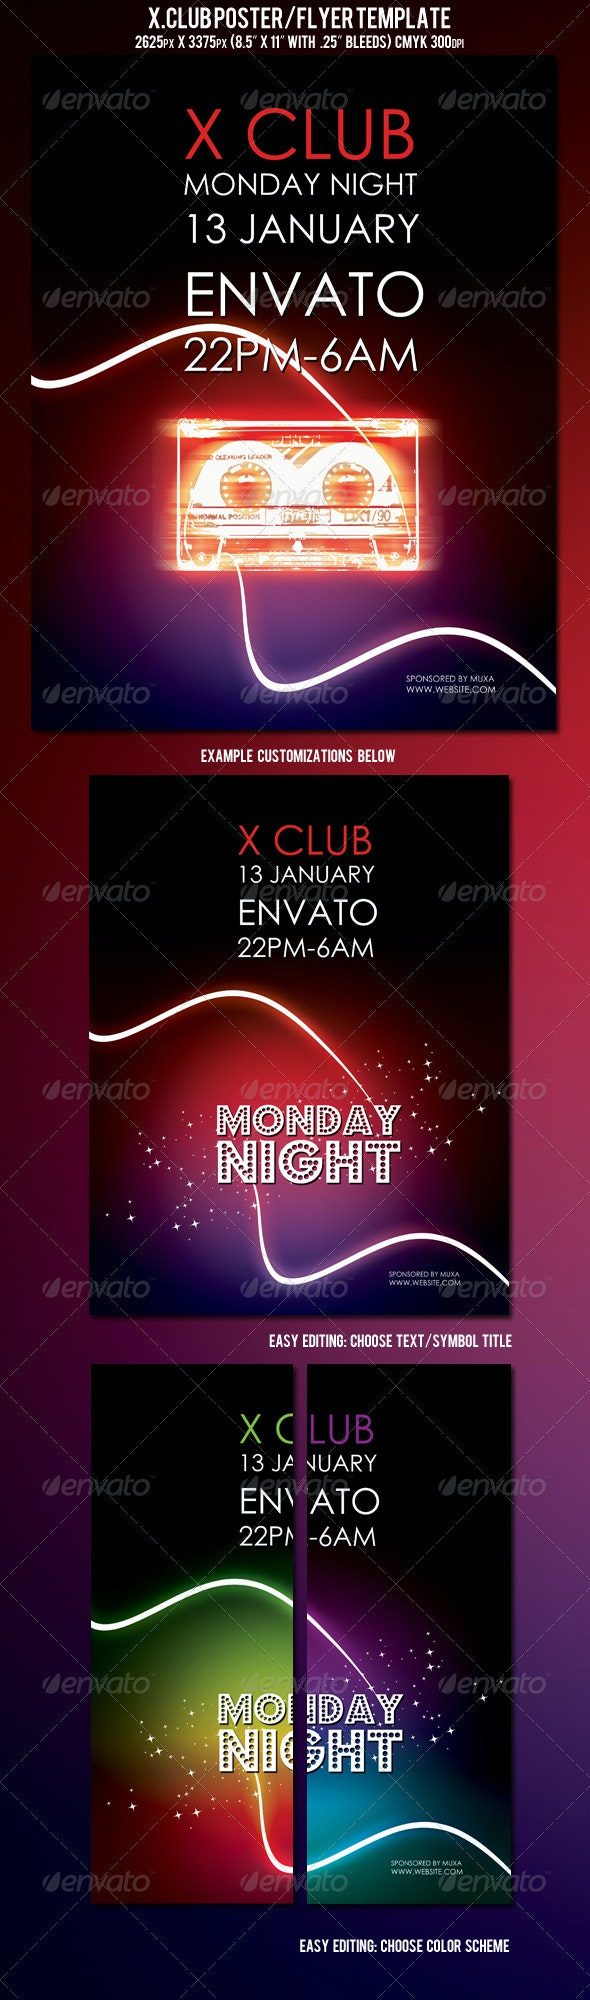 X.Club Poster/Flyer Template - Clubs & Parties Events